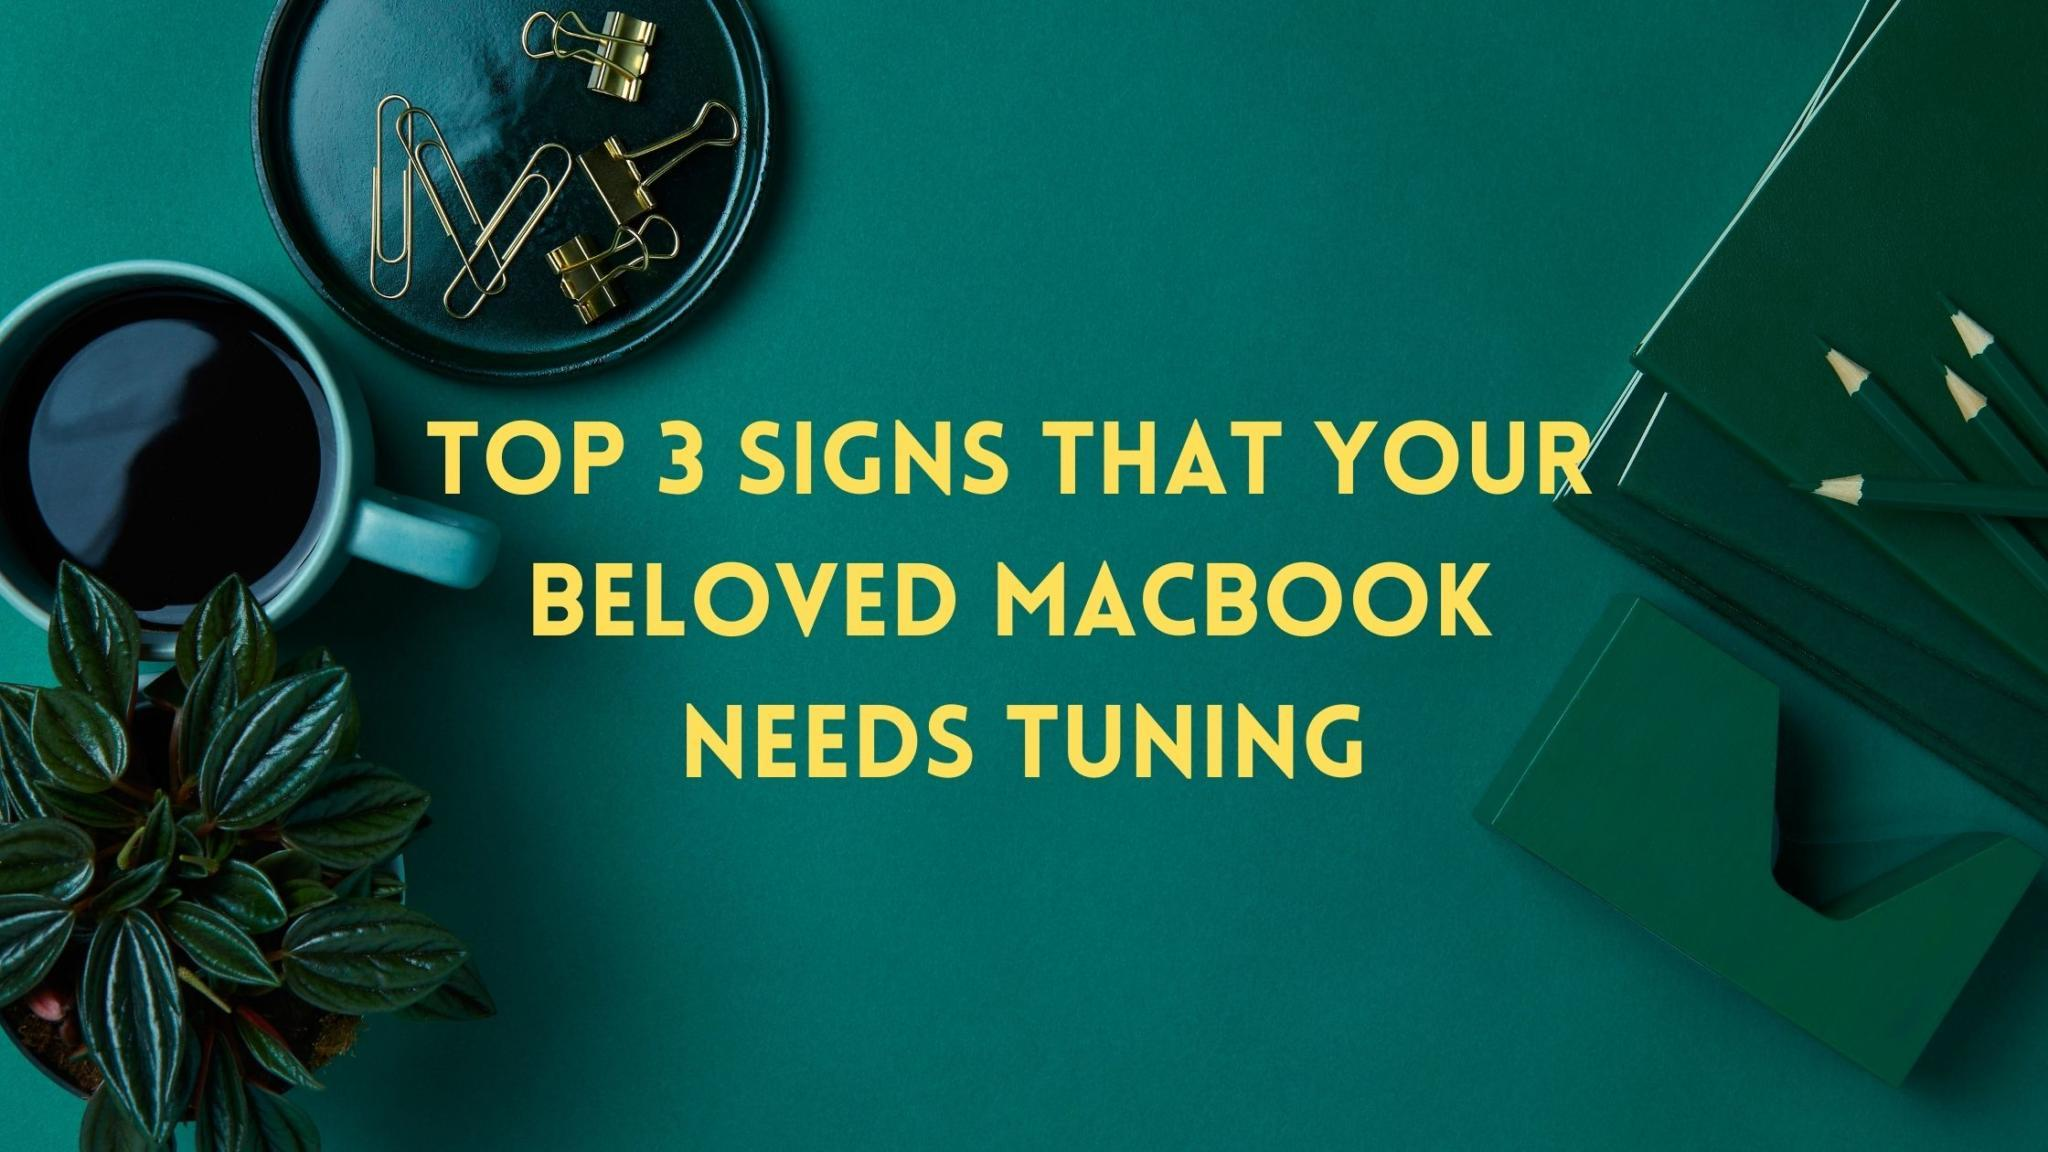 Top 3 Signs That Your Beloved Macbook Needs Tuning